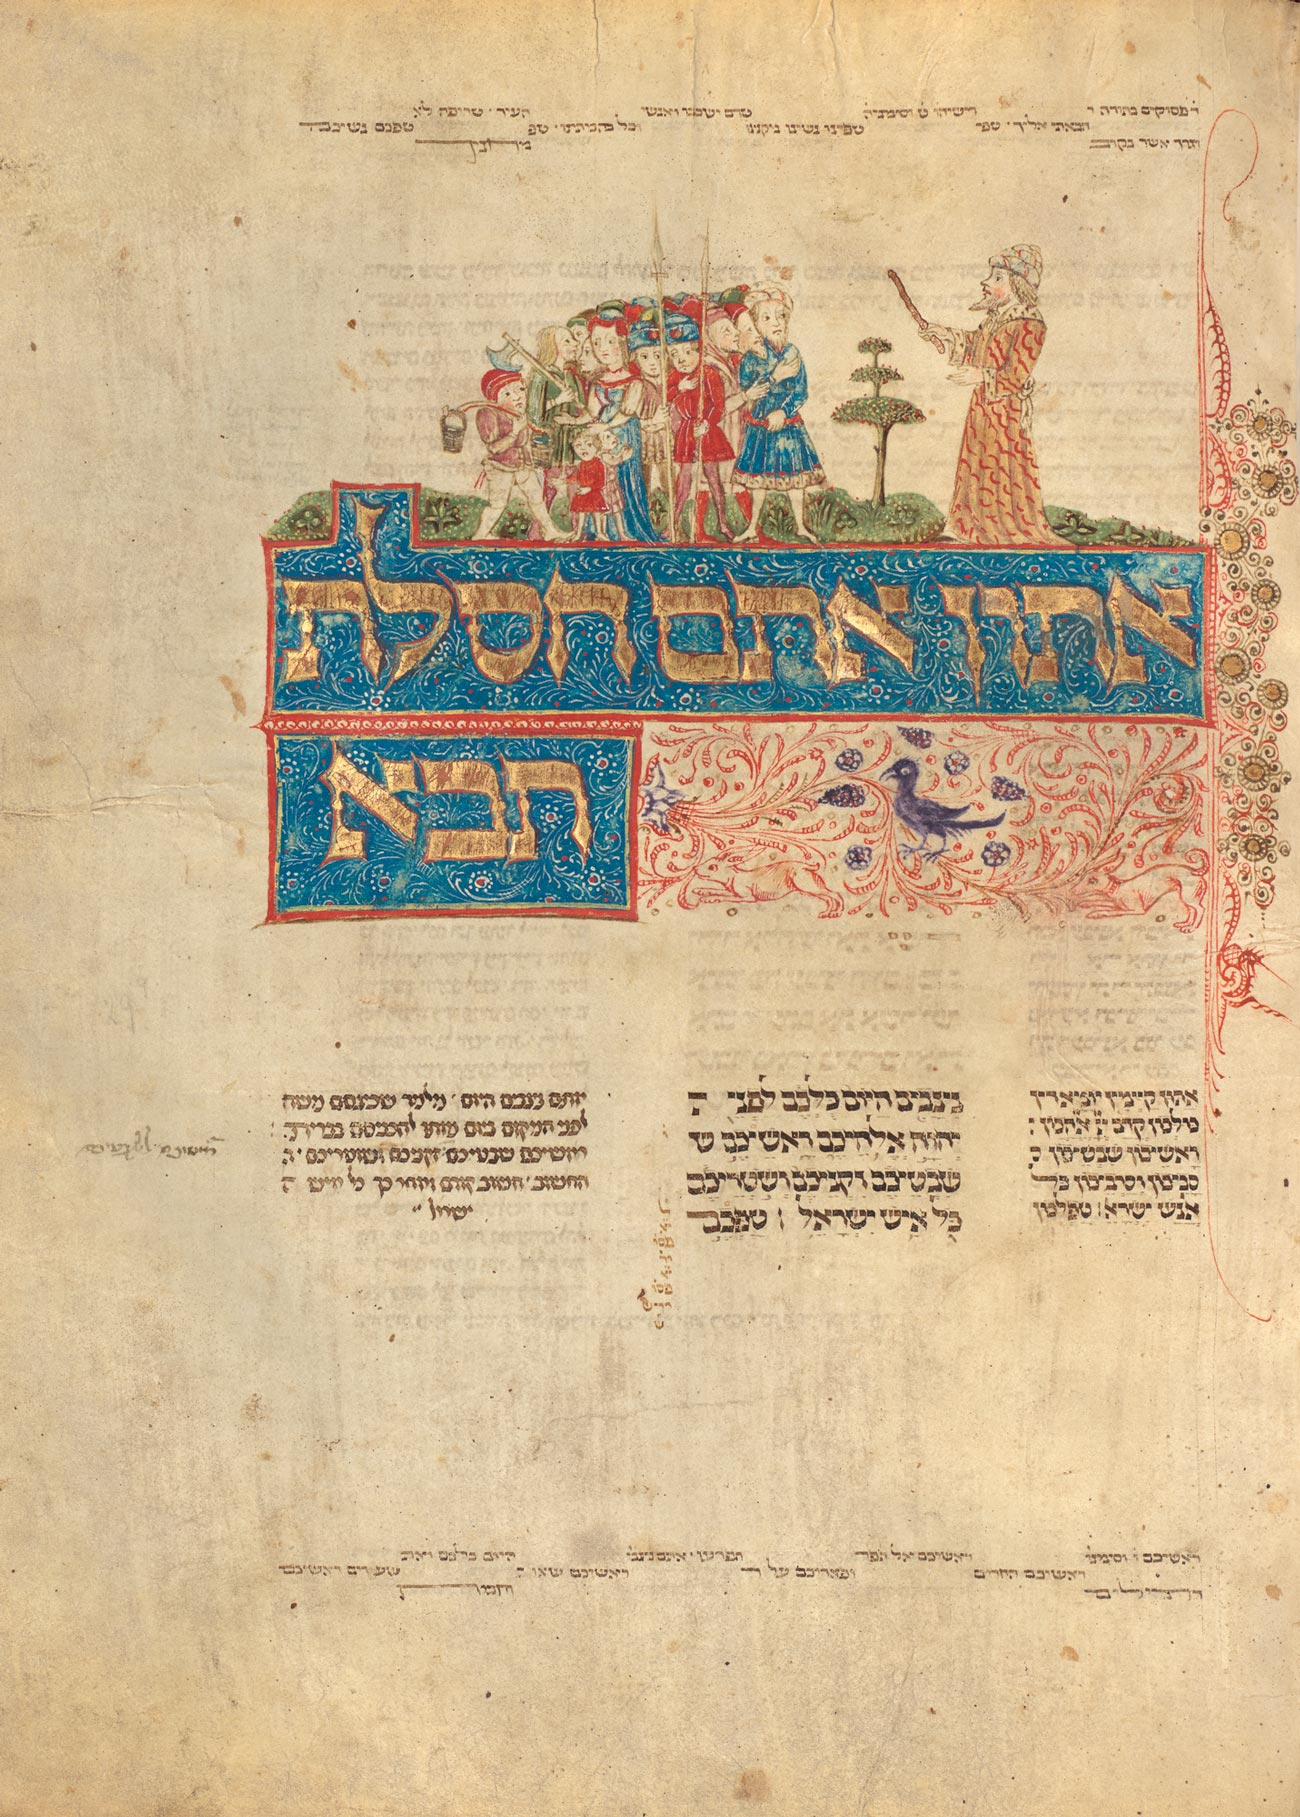 Illuminated manuscript in Hebrew similar to previous examples, but with with darker pigments and more detailed illustrations. A king appears to be talking to an armed group of people